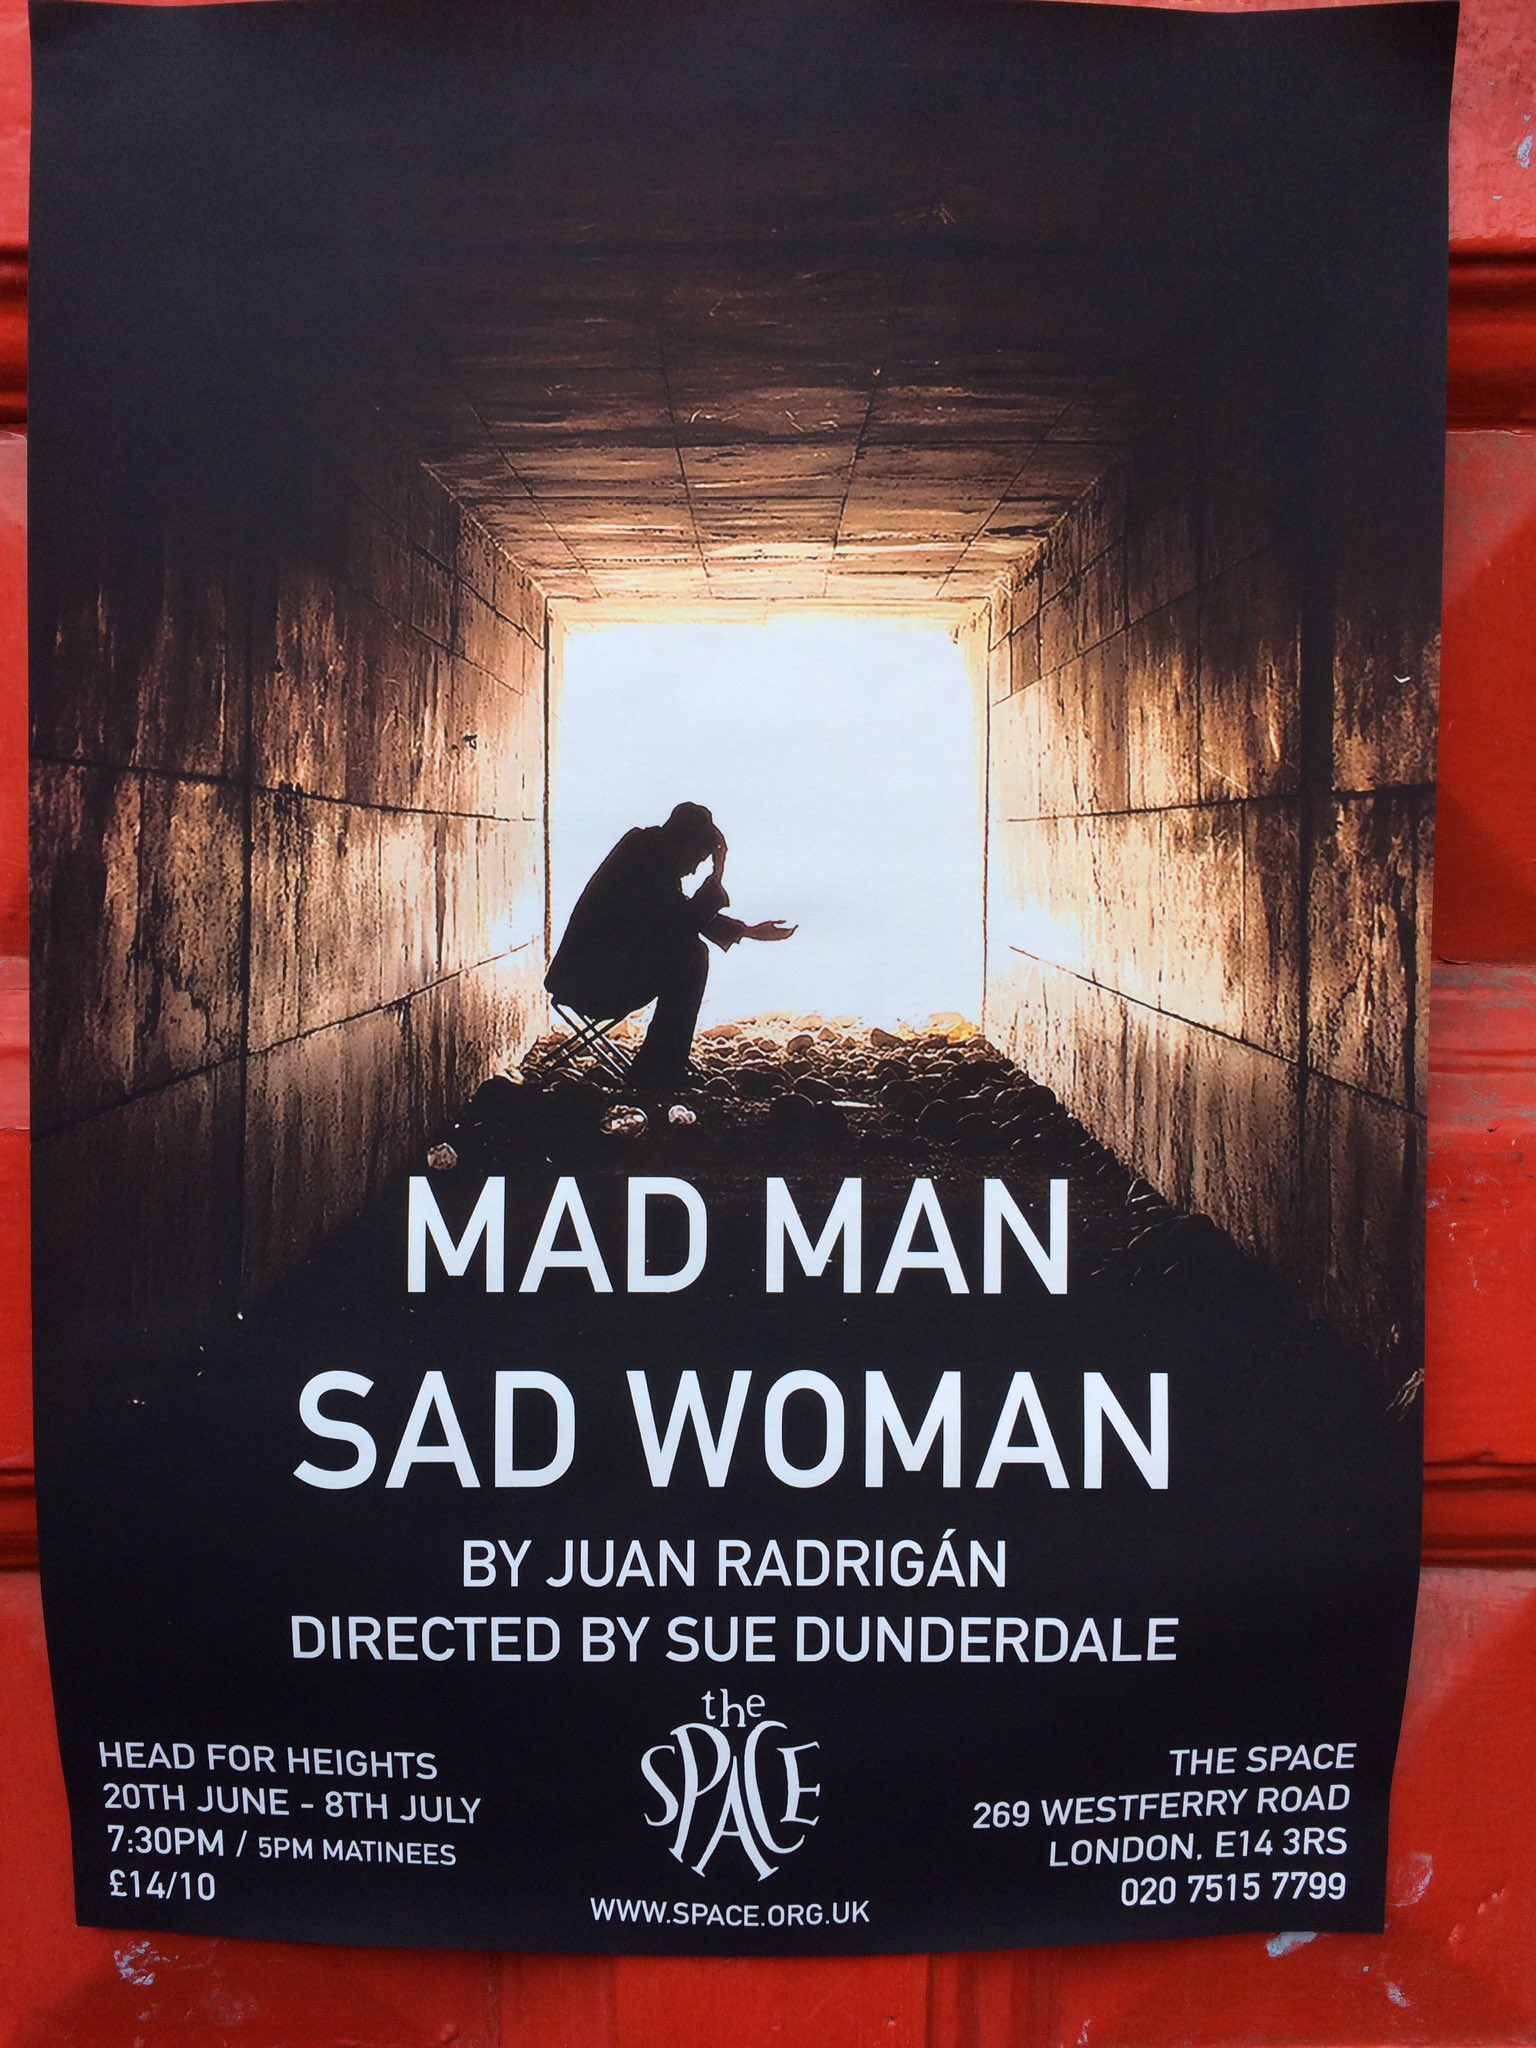 Looking forward to tonight's performance of #MadManSadWoman @spaceartscentre directed by Sue Dunderdale https://t.co/l4eGRAHbUV